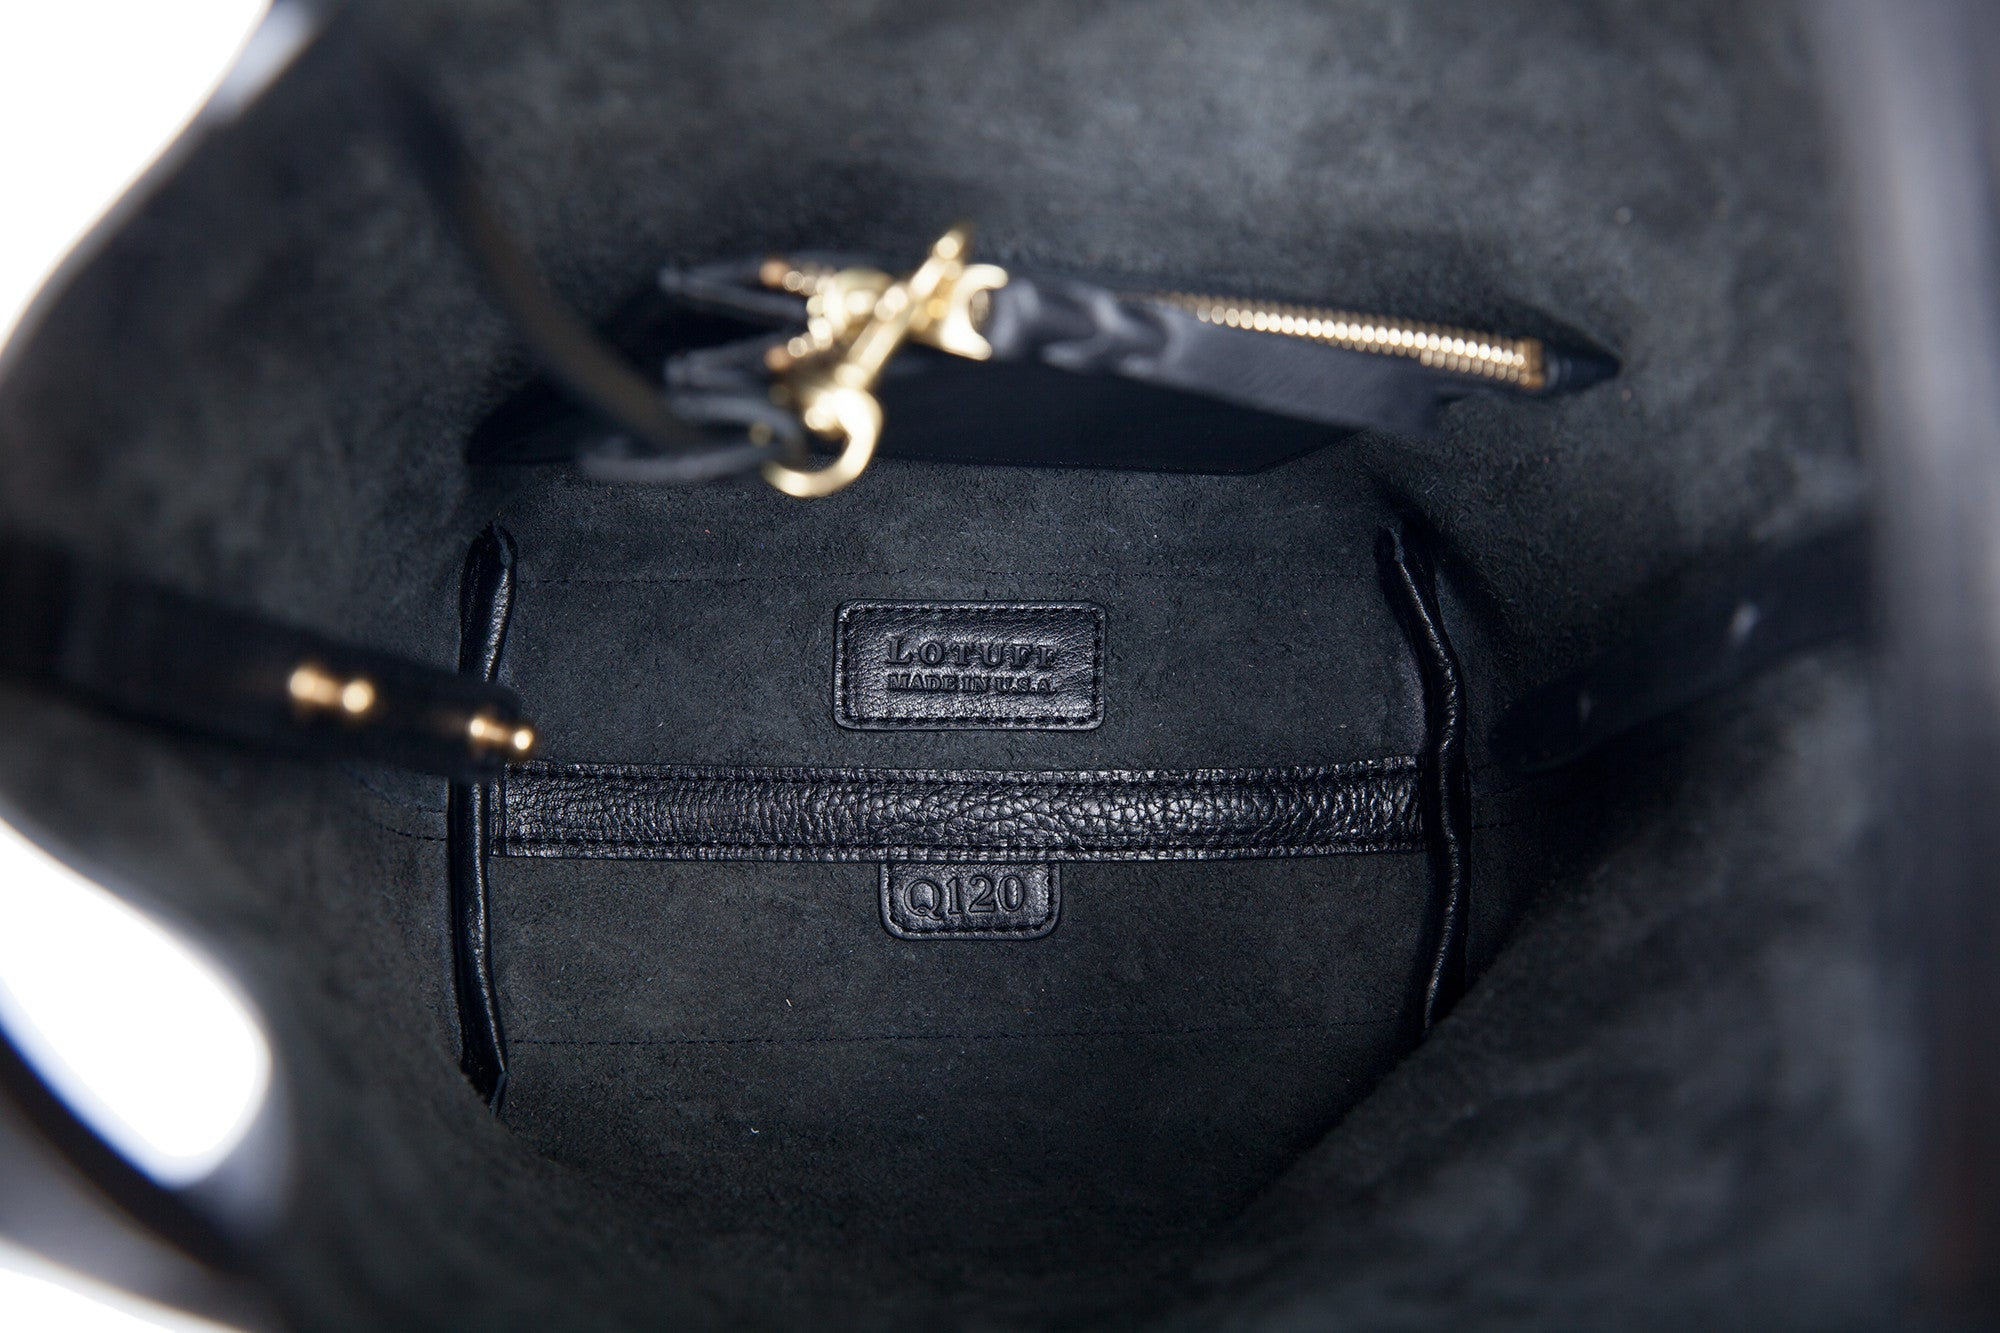 Inner Leather Pocket of The One-Piece Bag Black